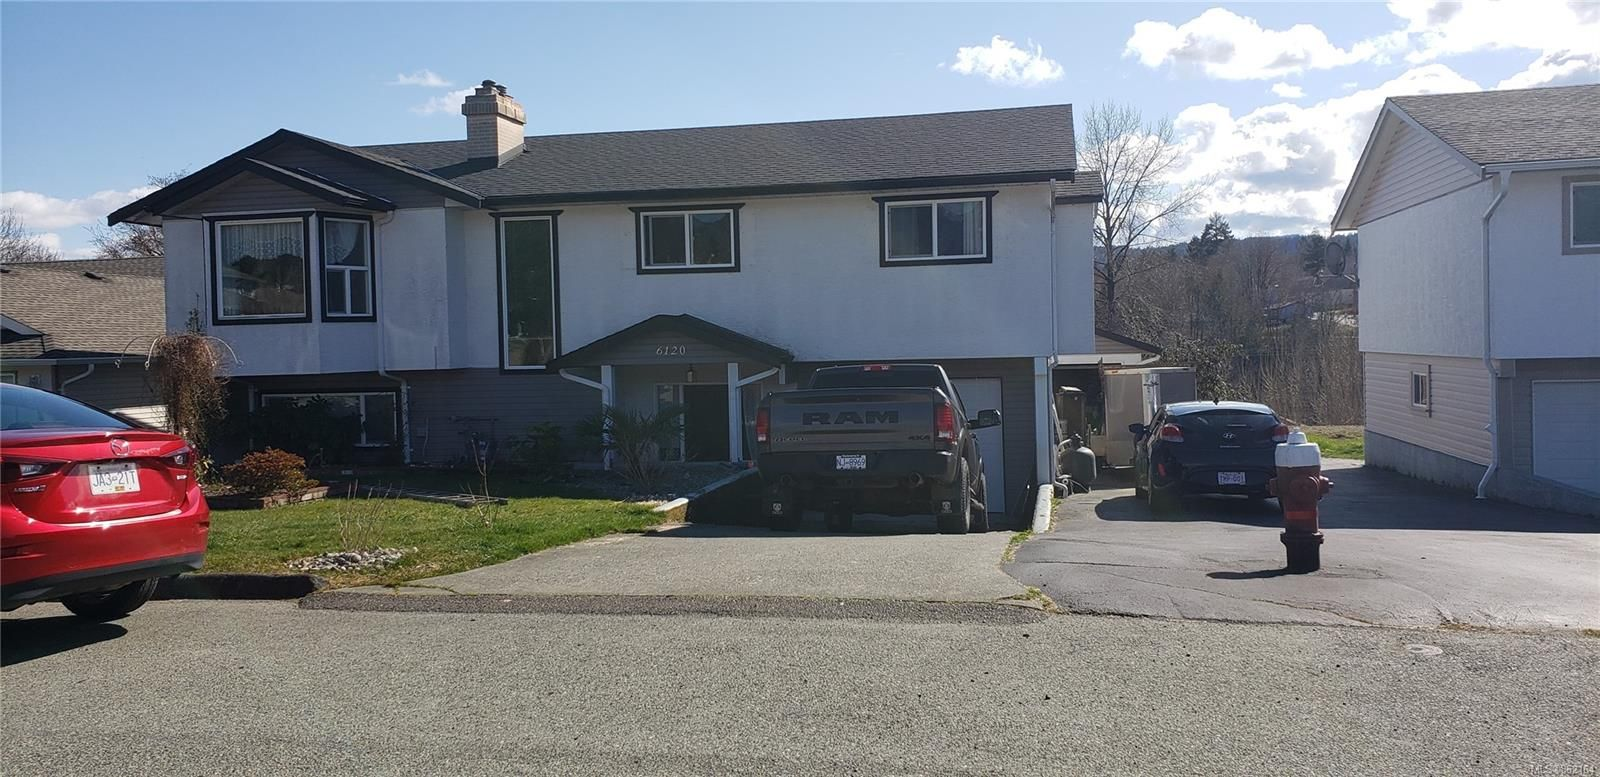 Main Photo: 6120 Russell Pl in : PA Port Alberni House for sale (Port Alberni)  : MLS®# 862164